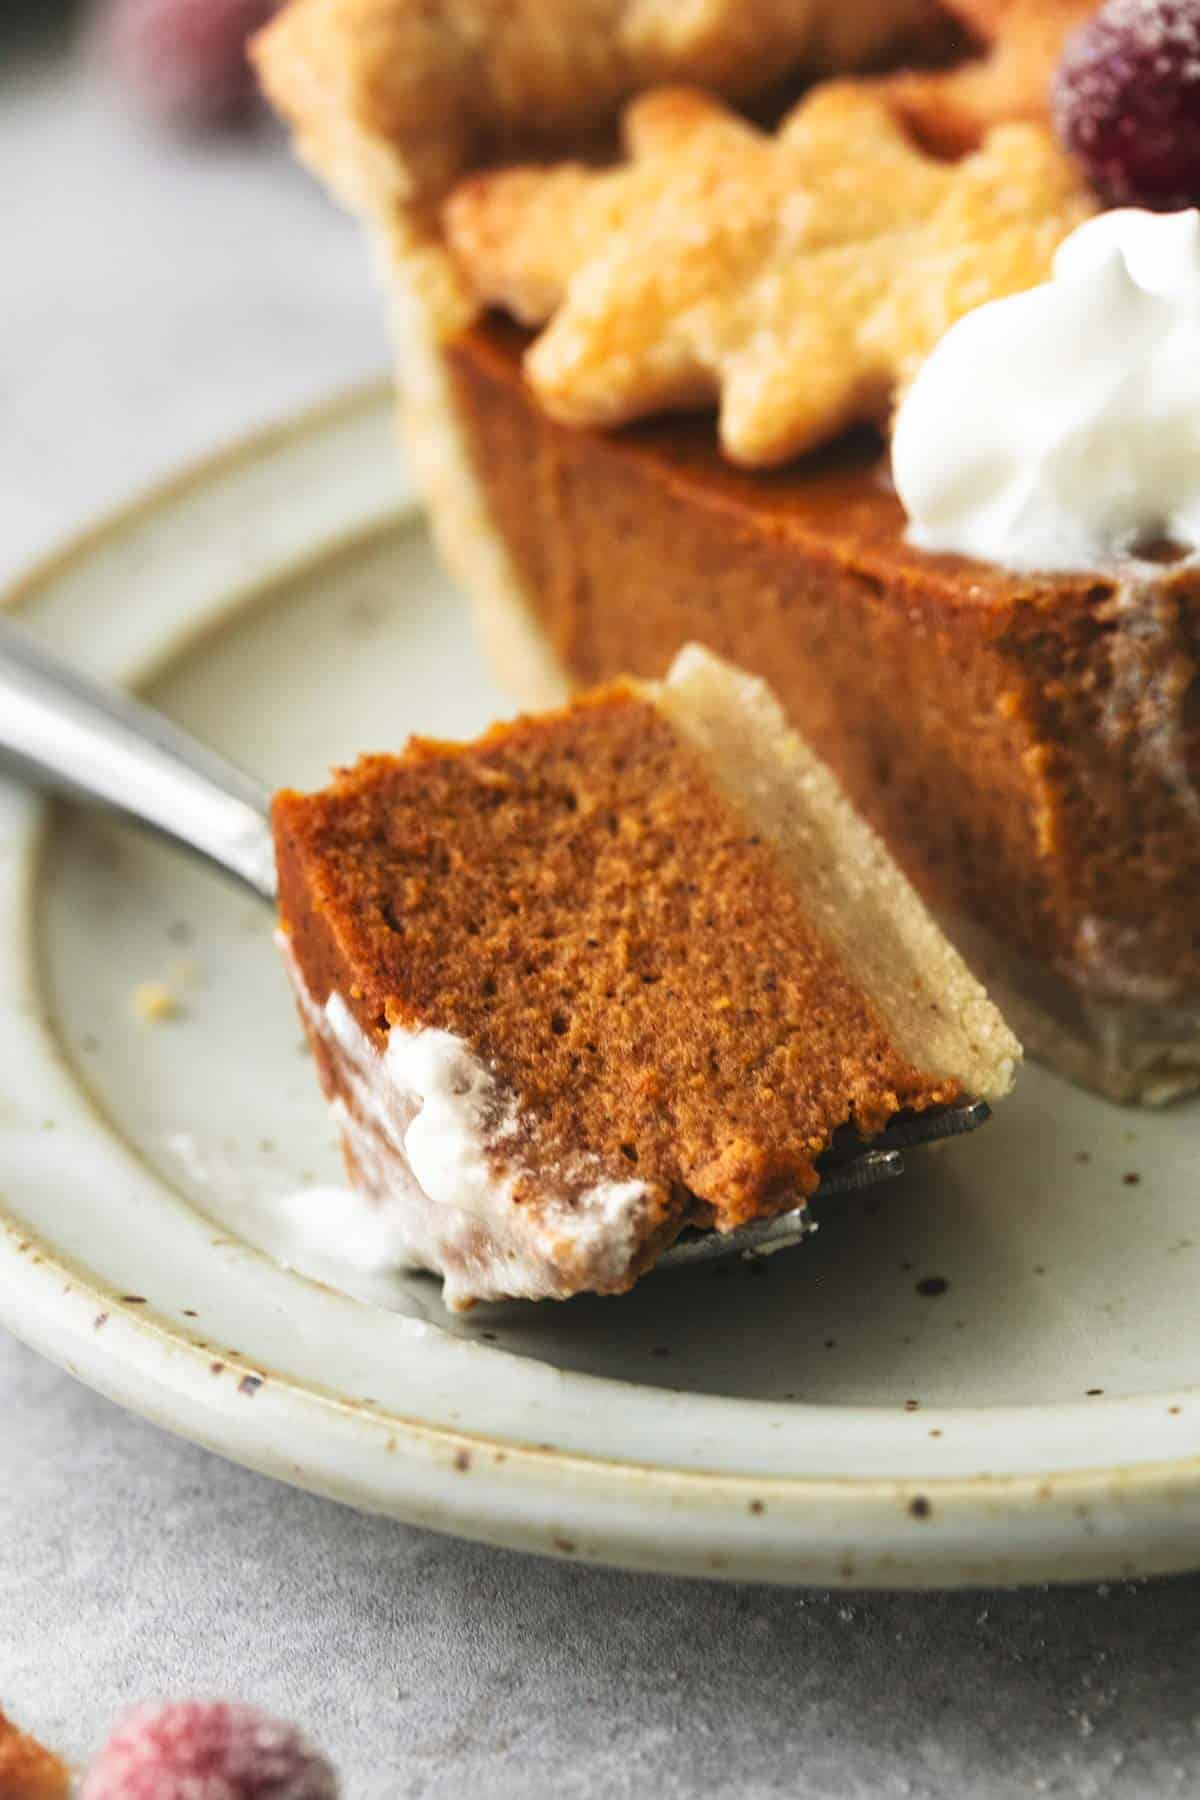 up close view of single bite of pumpkin pie with shortbread crust on a fork